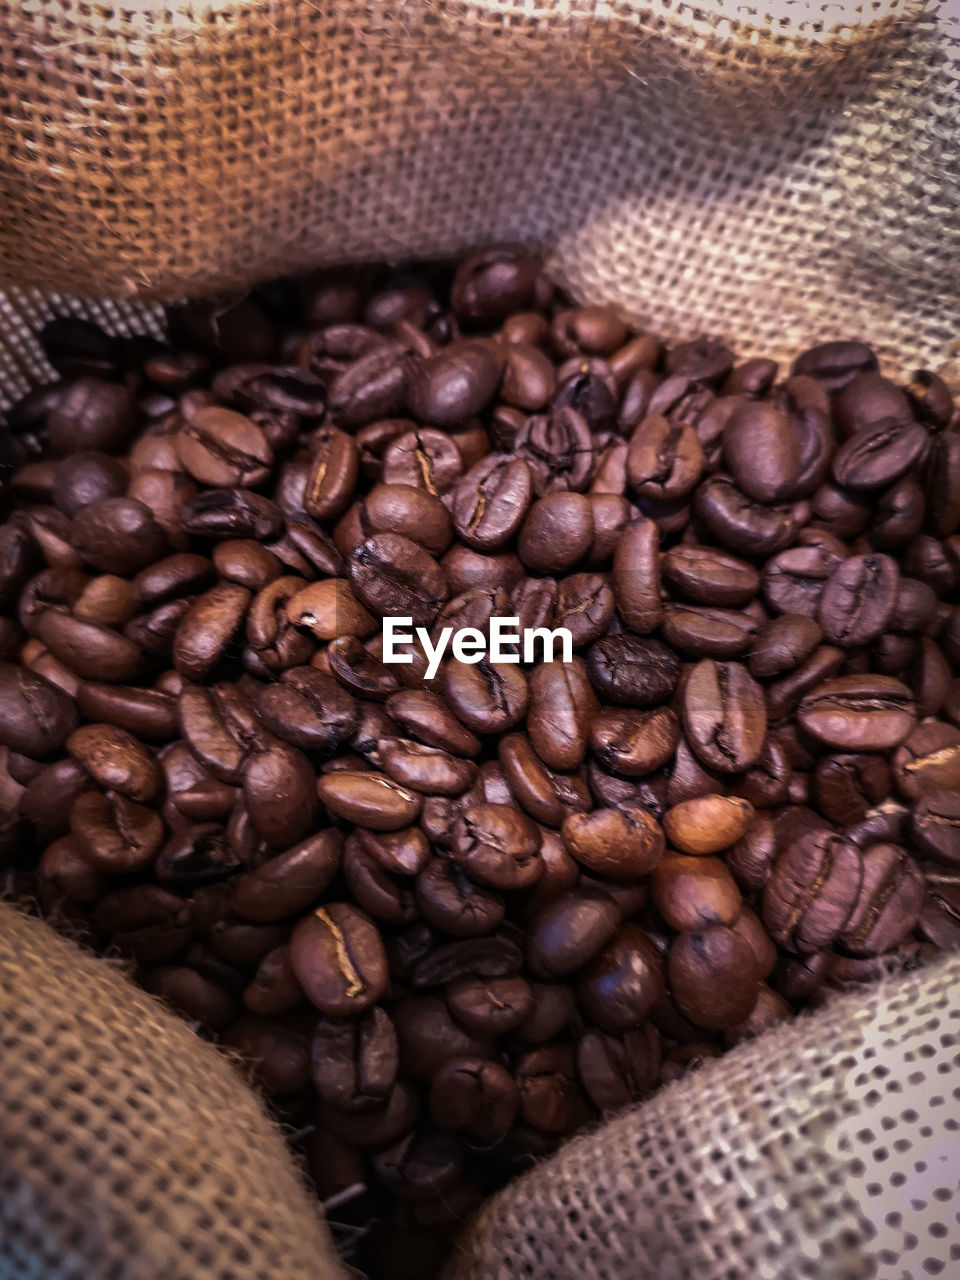 roasted coffee bean, food and drink, coffee - drink, brown, coffee, food, indoors, sack, still life, freshness, no people, close-up, coffee bean, caffeine, large group of objects, pattern, jute, container, abundance, drink